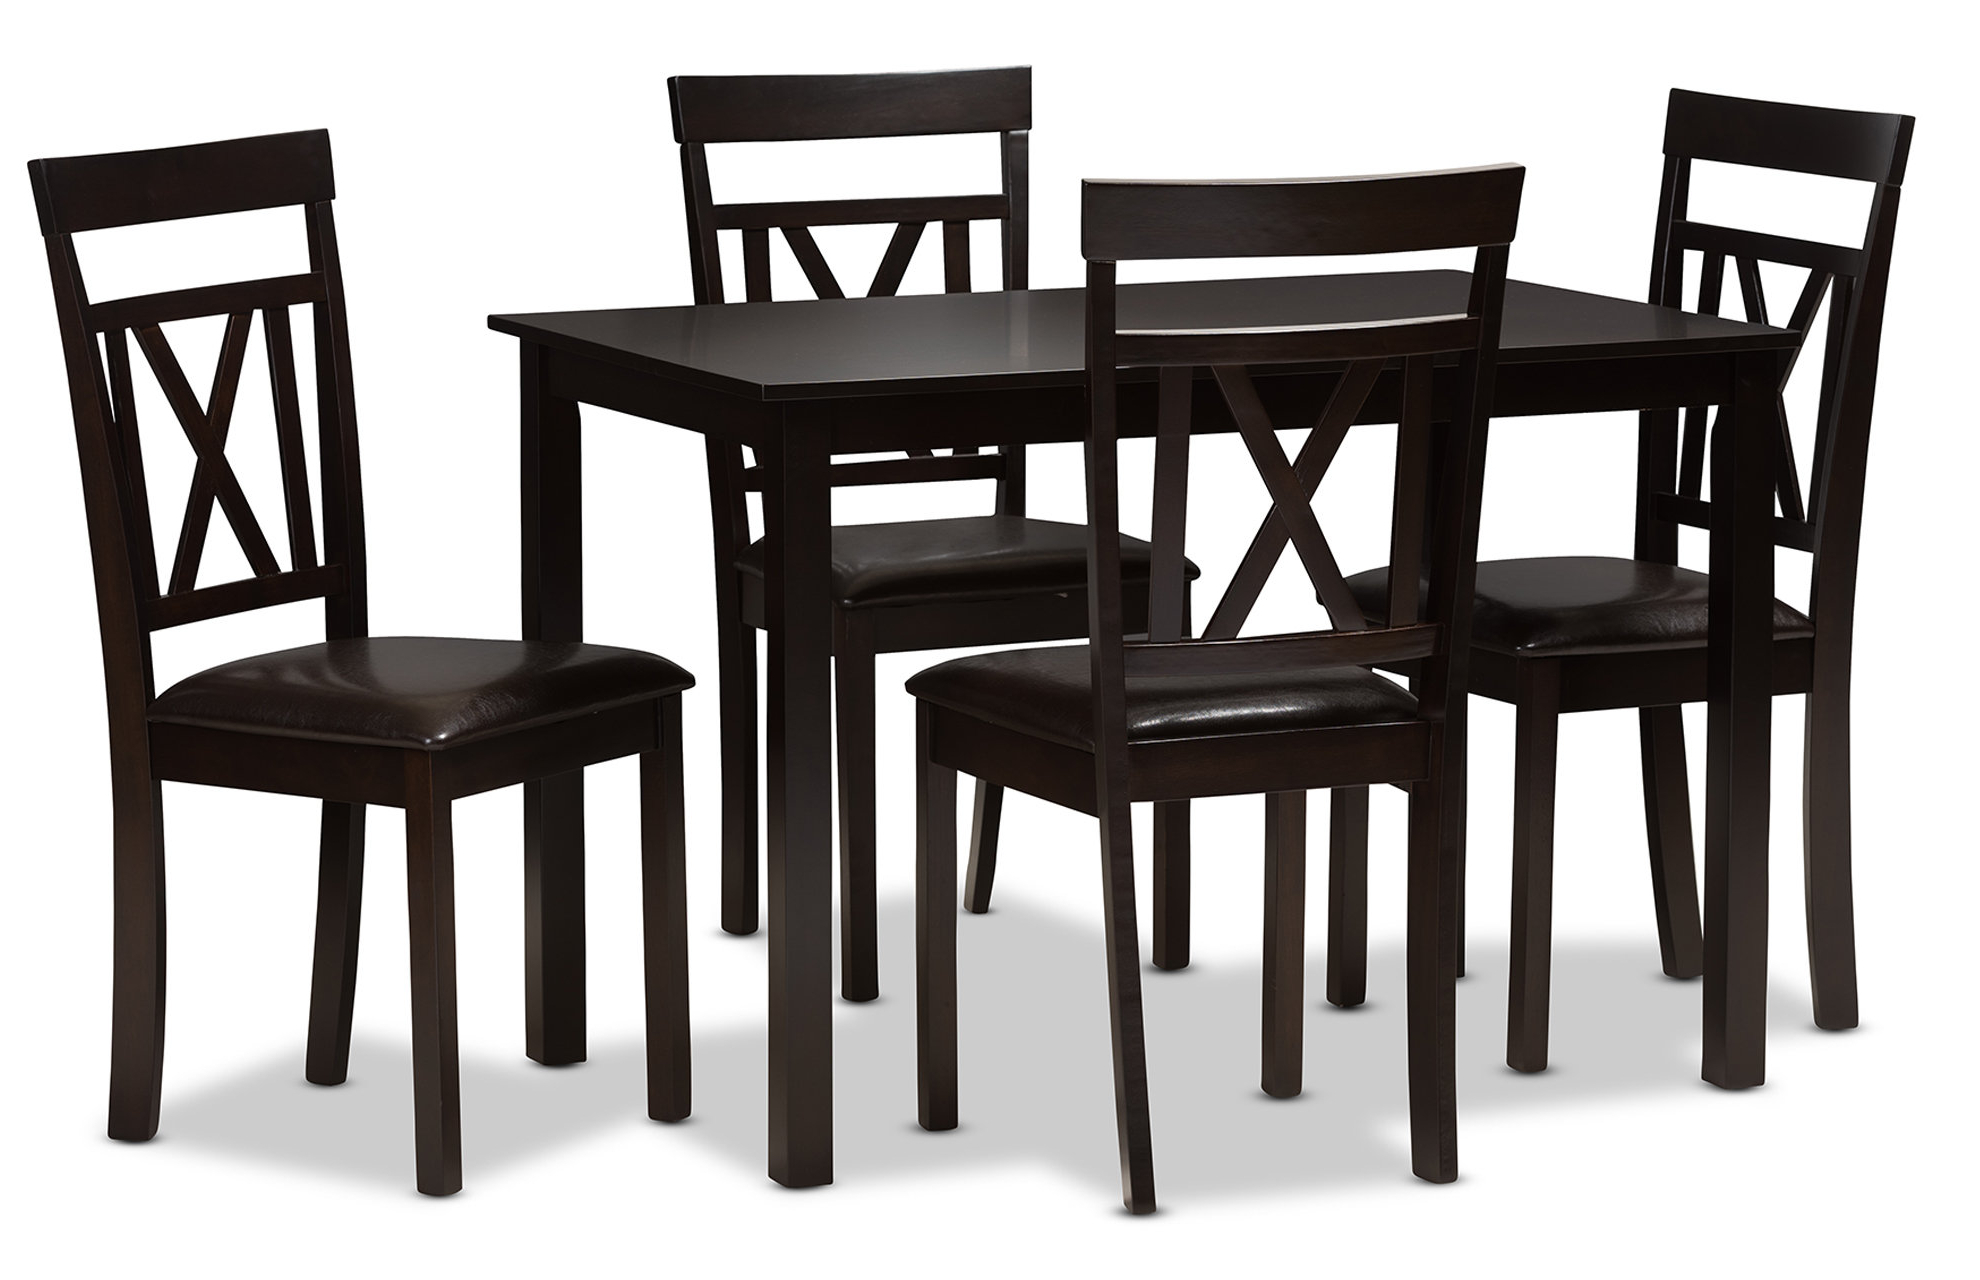 Whitbey Modern And Contemporary 5 Piece Breakfast Nook Dining Set Pertaining To Most Recently Released 5 Piece Breakfast Nook Dining Sets (View 20 of 20)